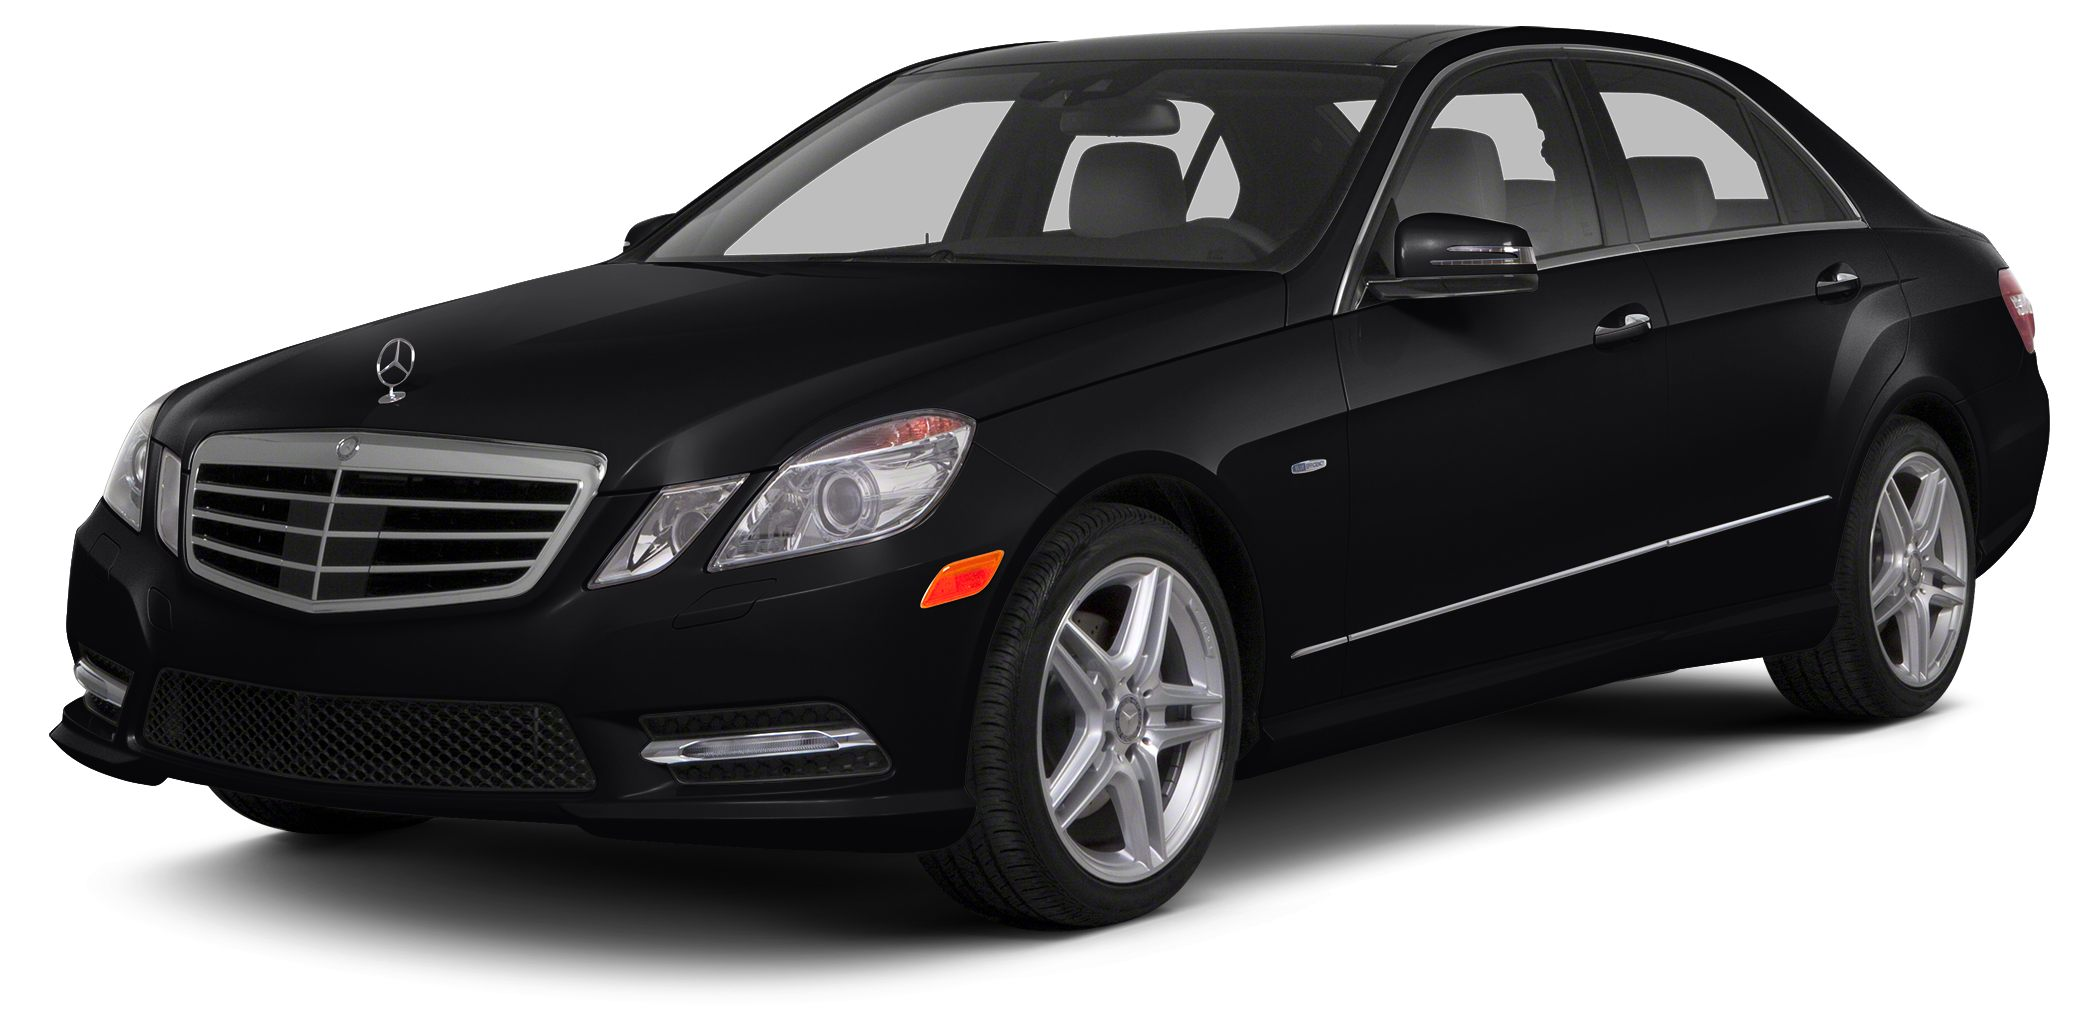 2013 MERCEDES E-Class E350 4MATIC JUST REPRICED FROM 45988 FUEL EFFICIENT 29 MPG Hwy19 MPG City